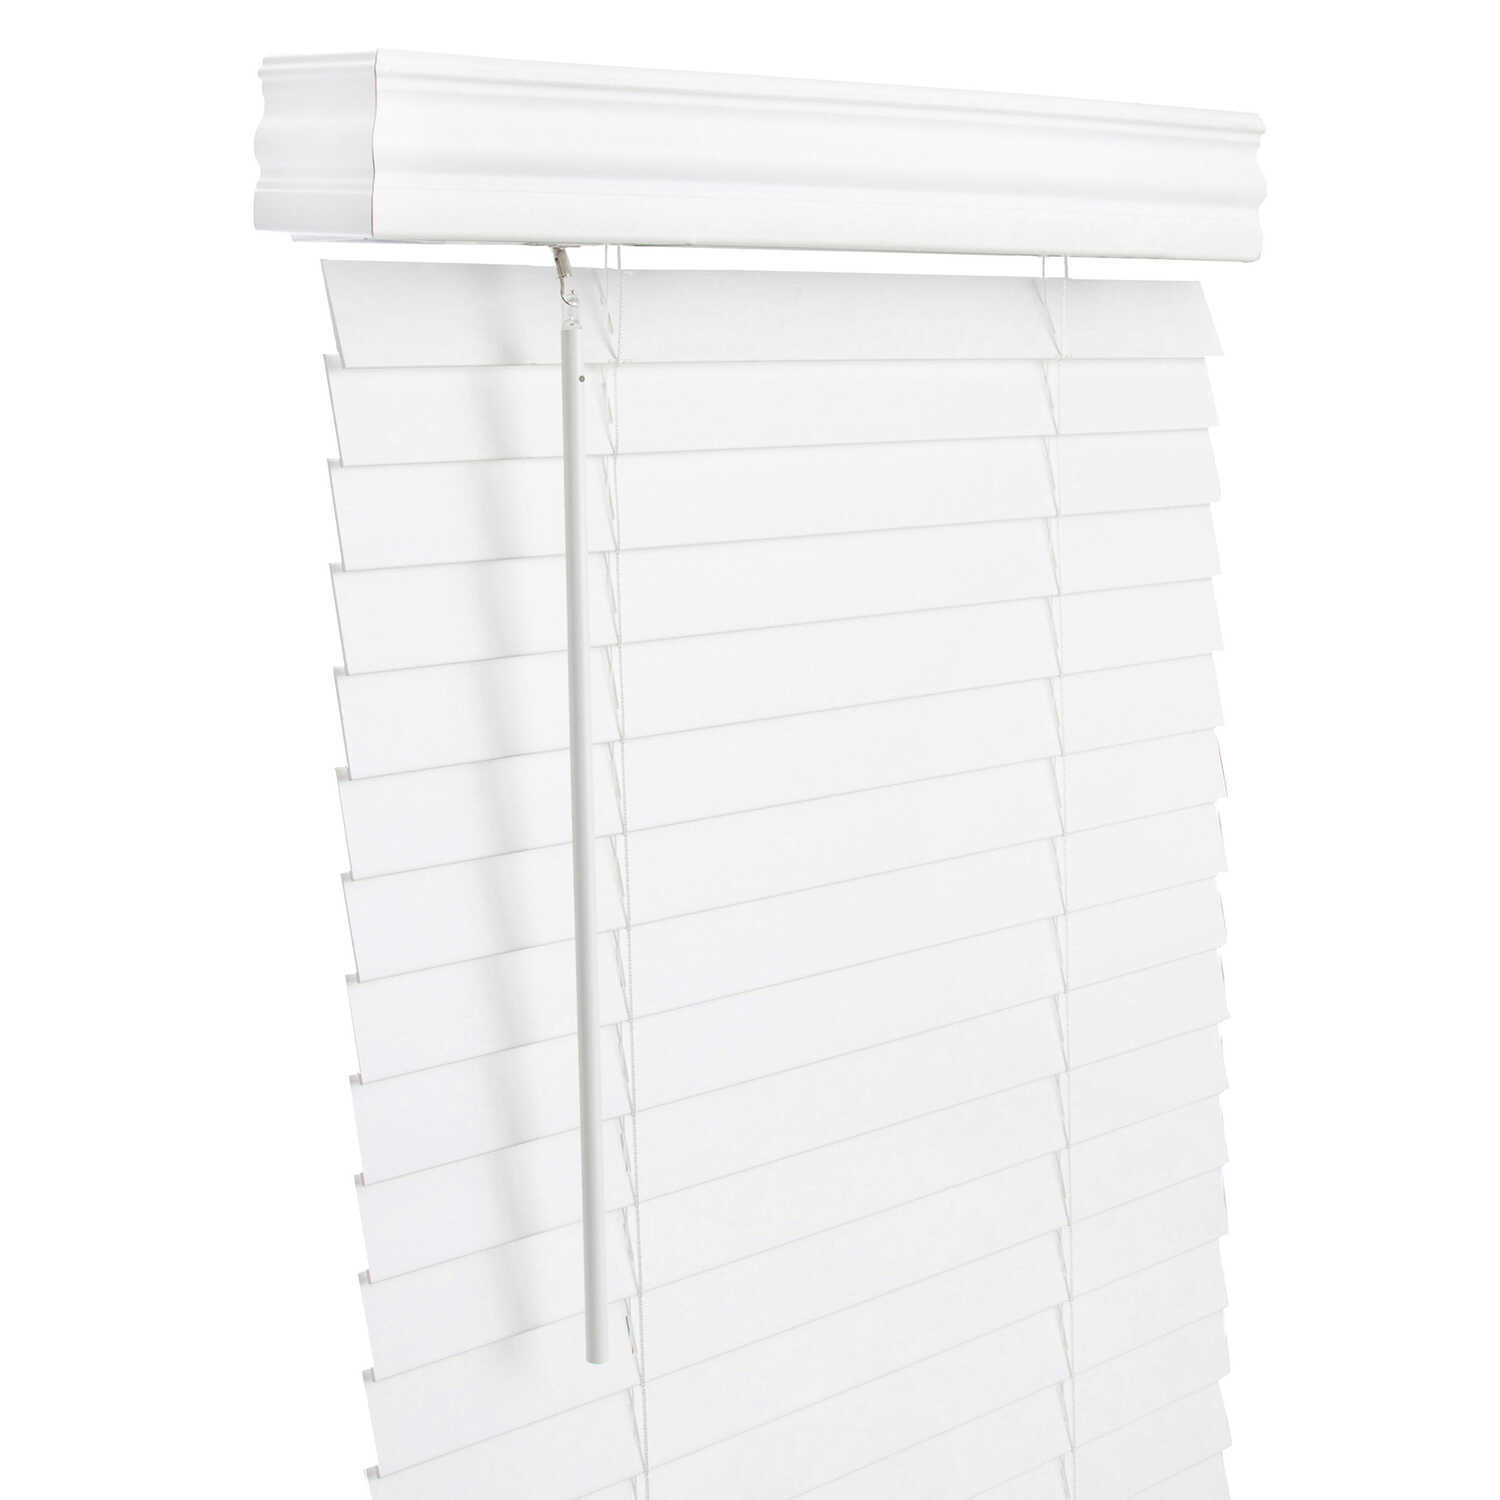 Living Accents  Faux Wood  2 in. Mini-Blinds  43 in. W x 60 in. H White  Cordless